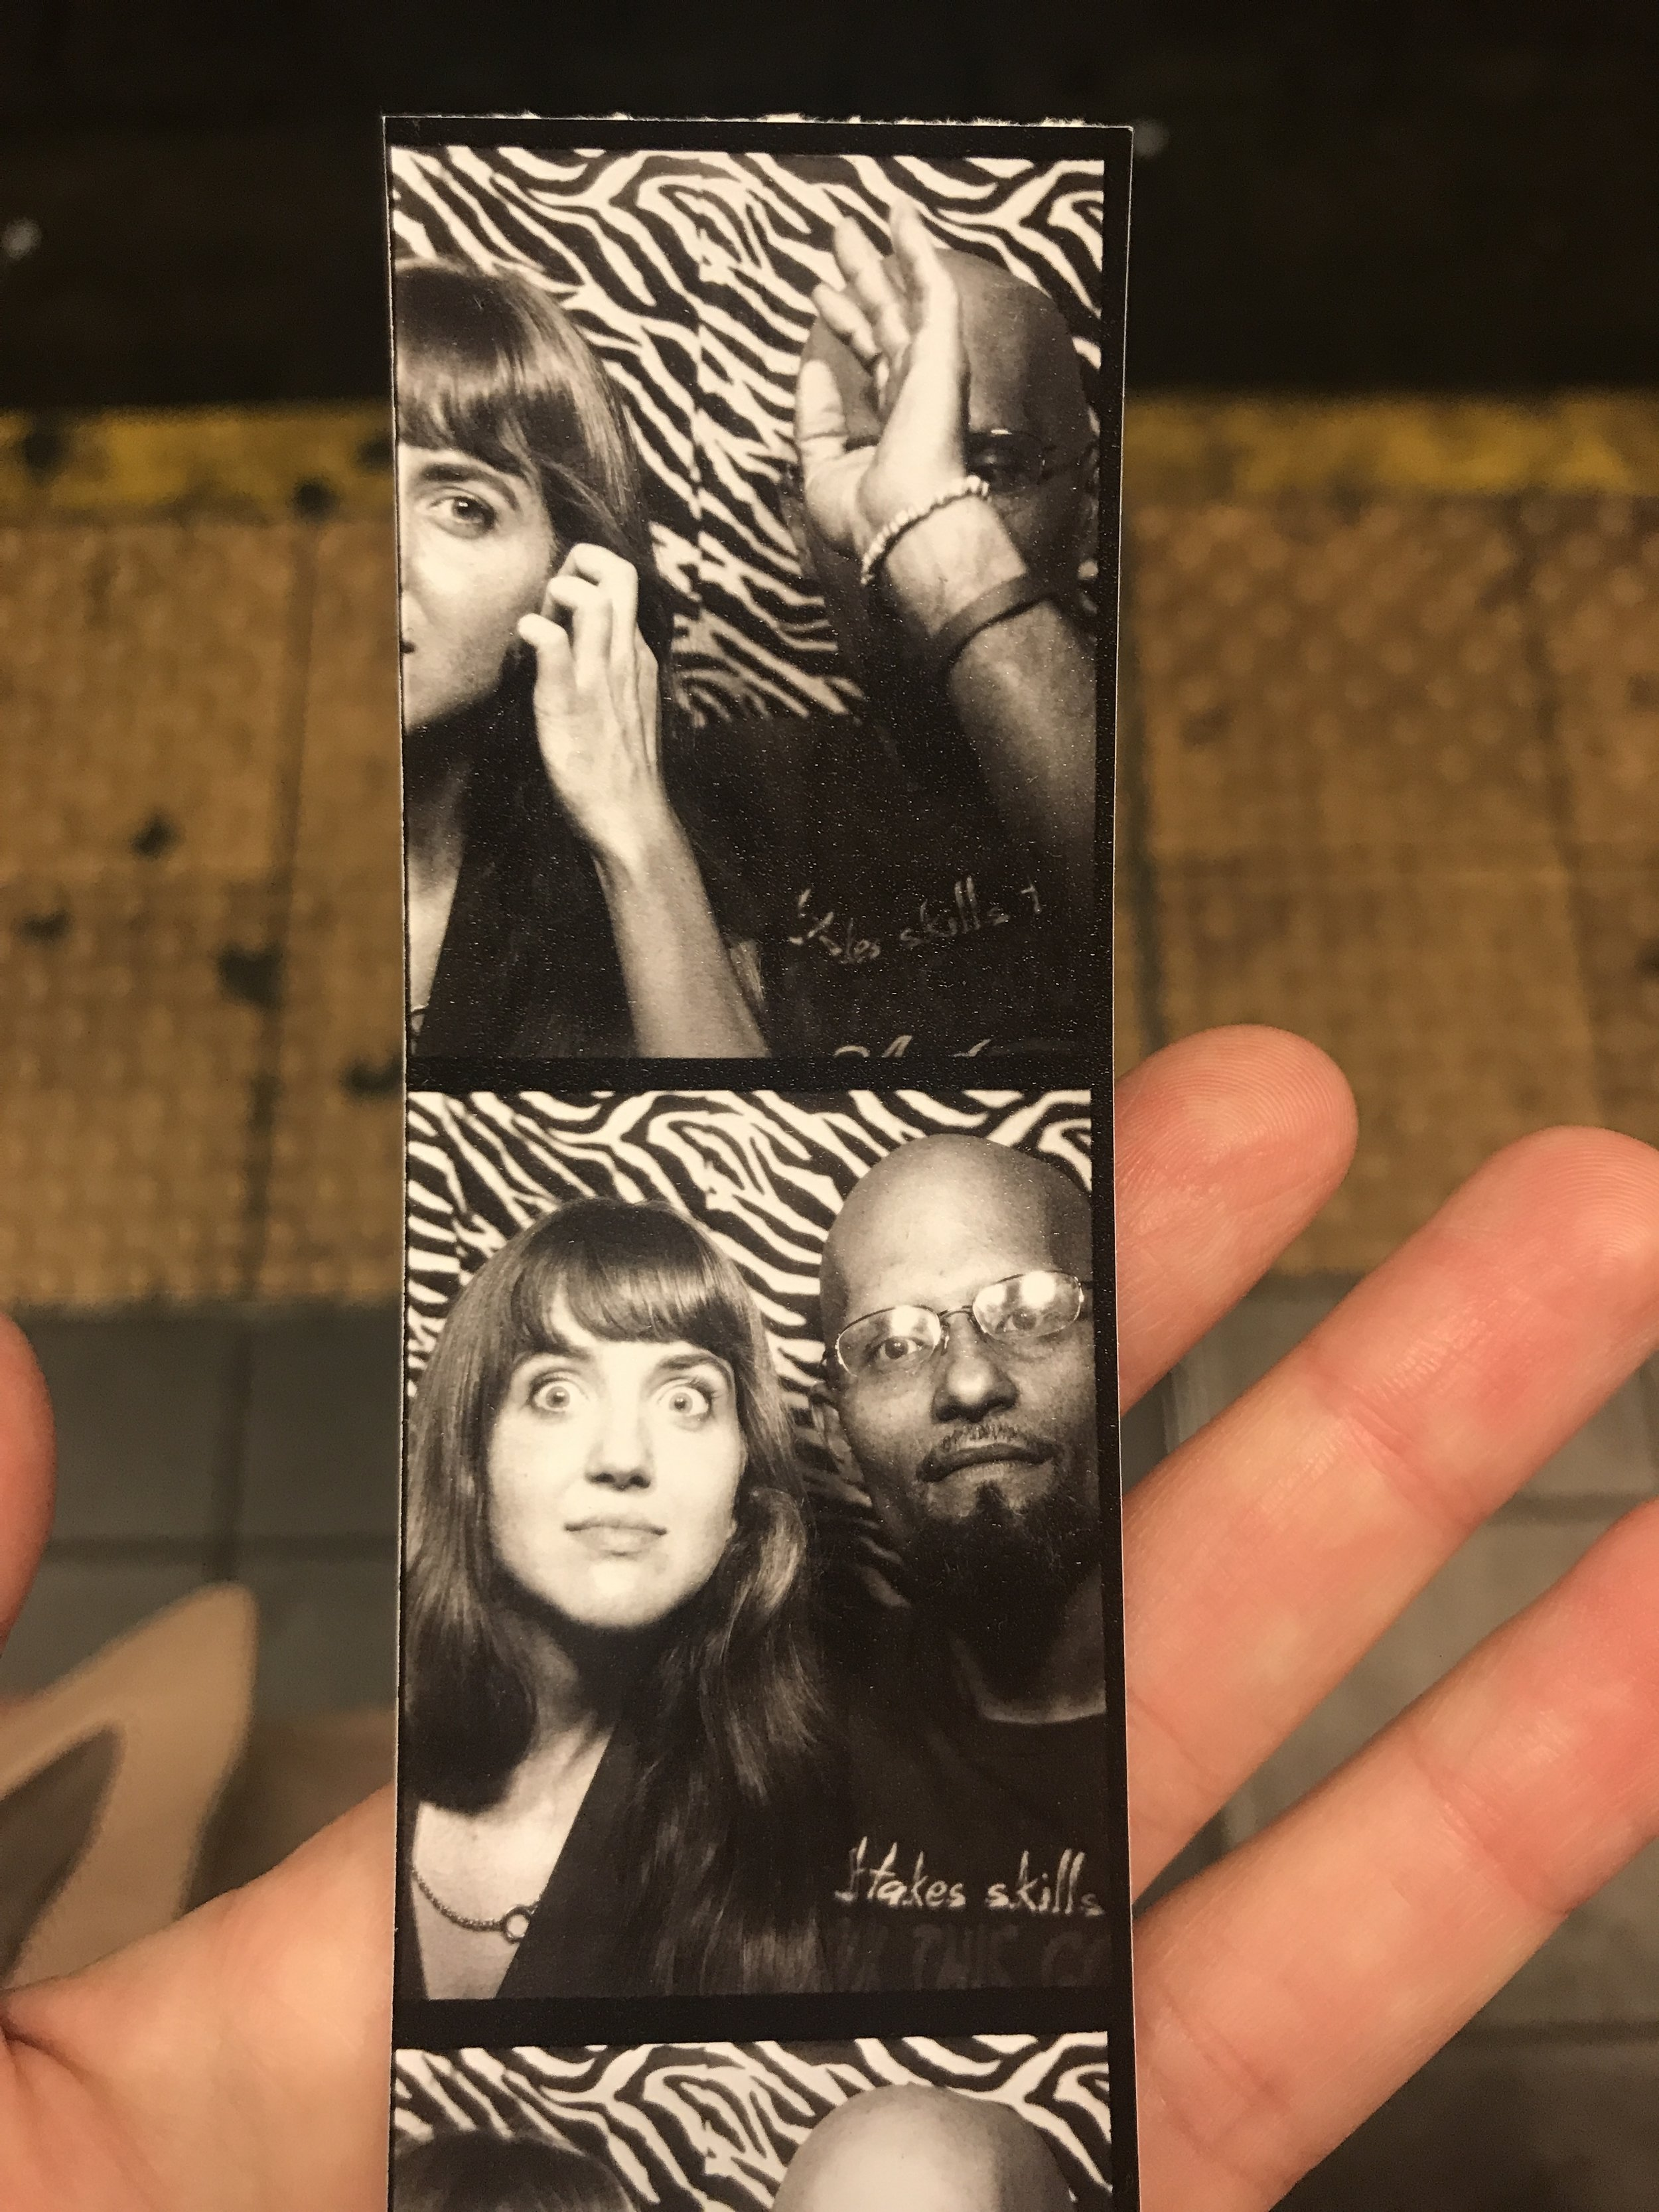 Getting into a photobooth with a stranger because you need a better note to end the day.